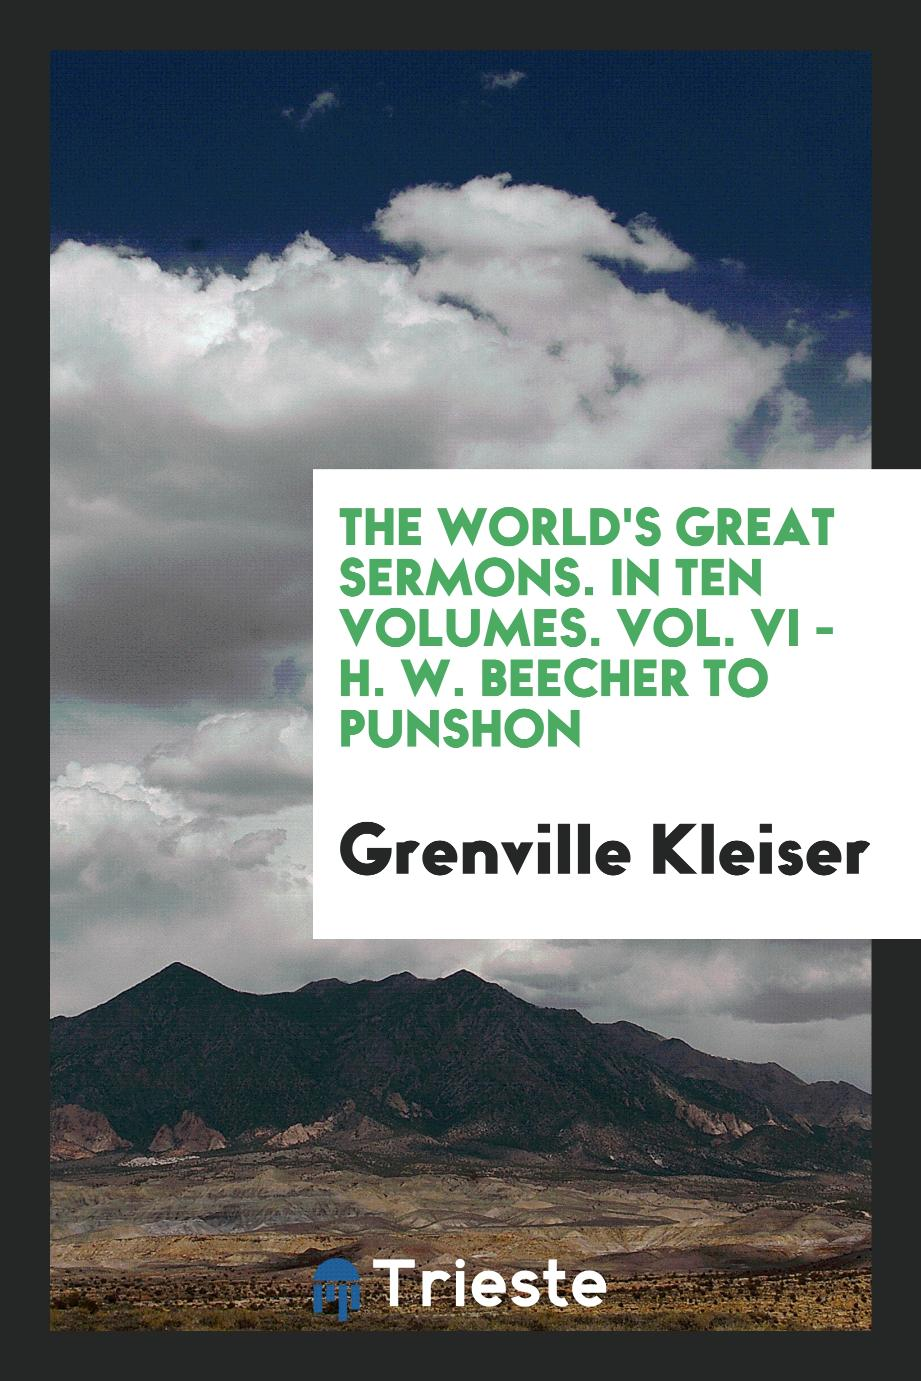 The World's Great Sermons. In Ten Volumes. Vol. VI - H. W. Beecher to Punshon